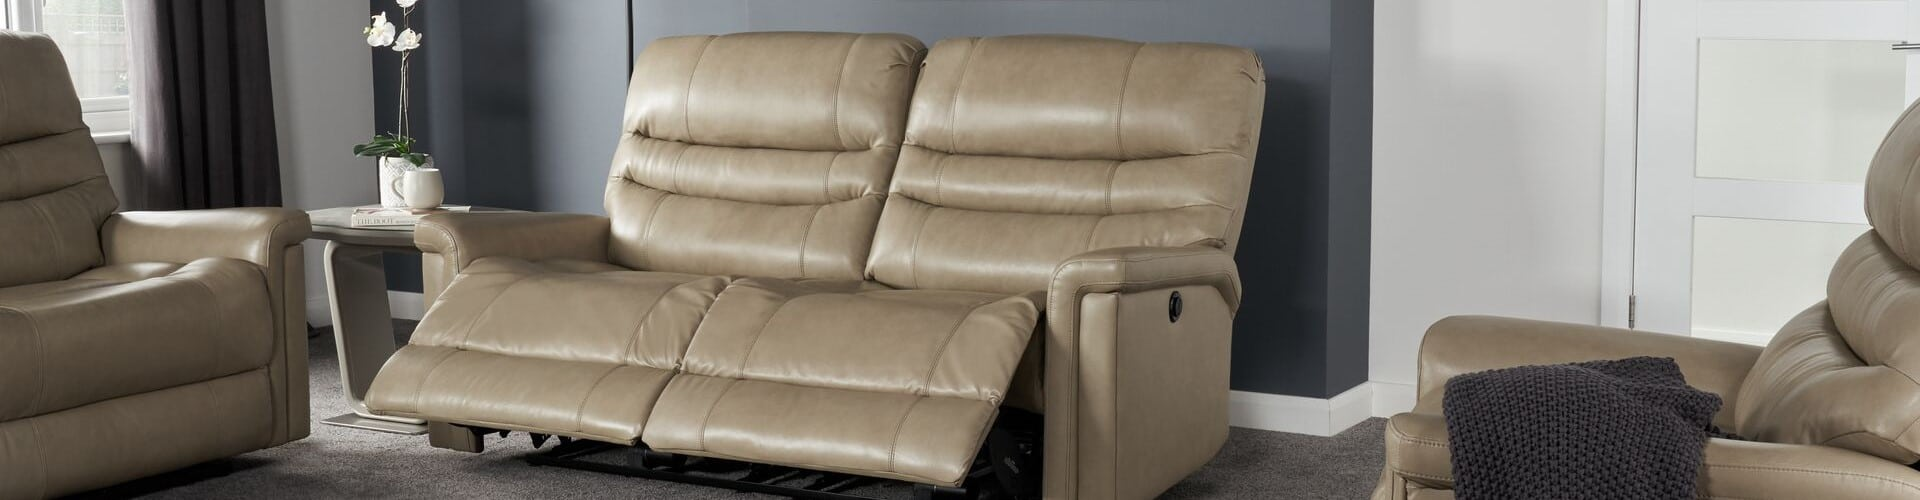 Soft vs Firm Recliners – Find More Facts about Both Types Here!